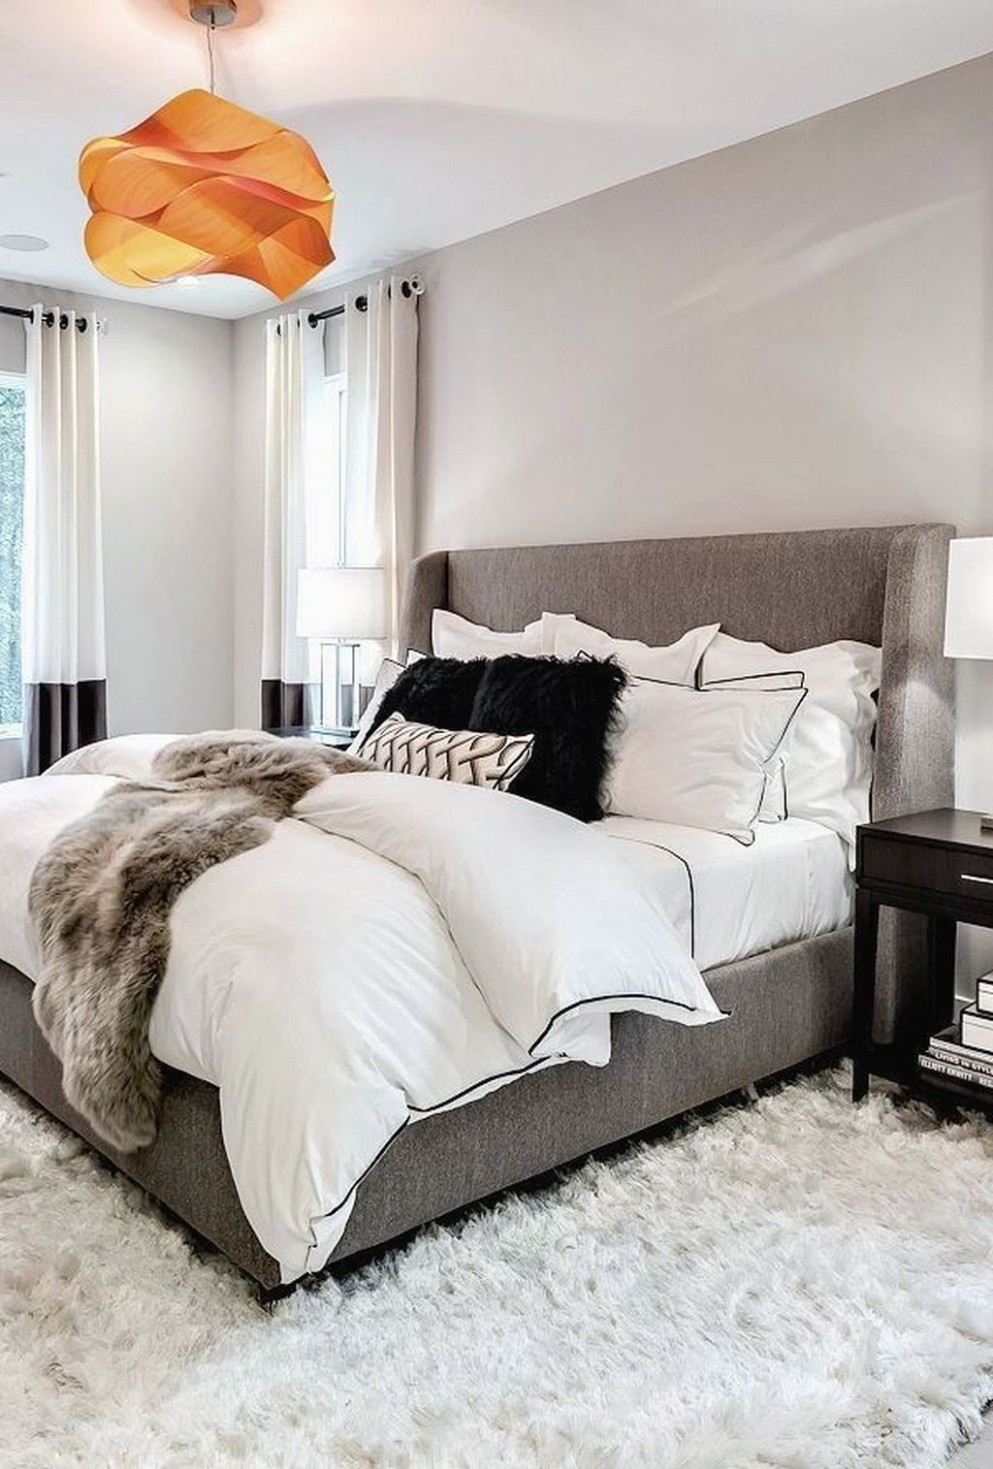 10 Stunning Apartment Bedroom Decor For Couples Look Romantic in  - Bedroom Ideas Romantic